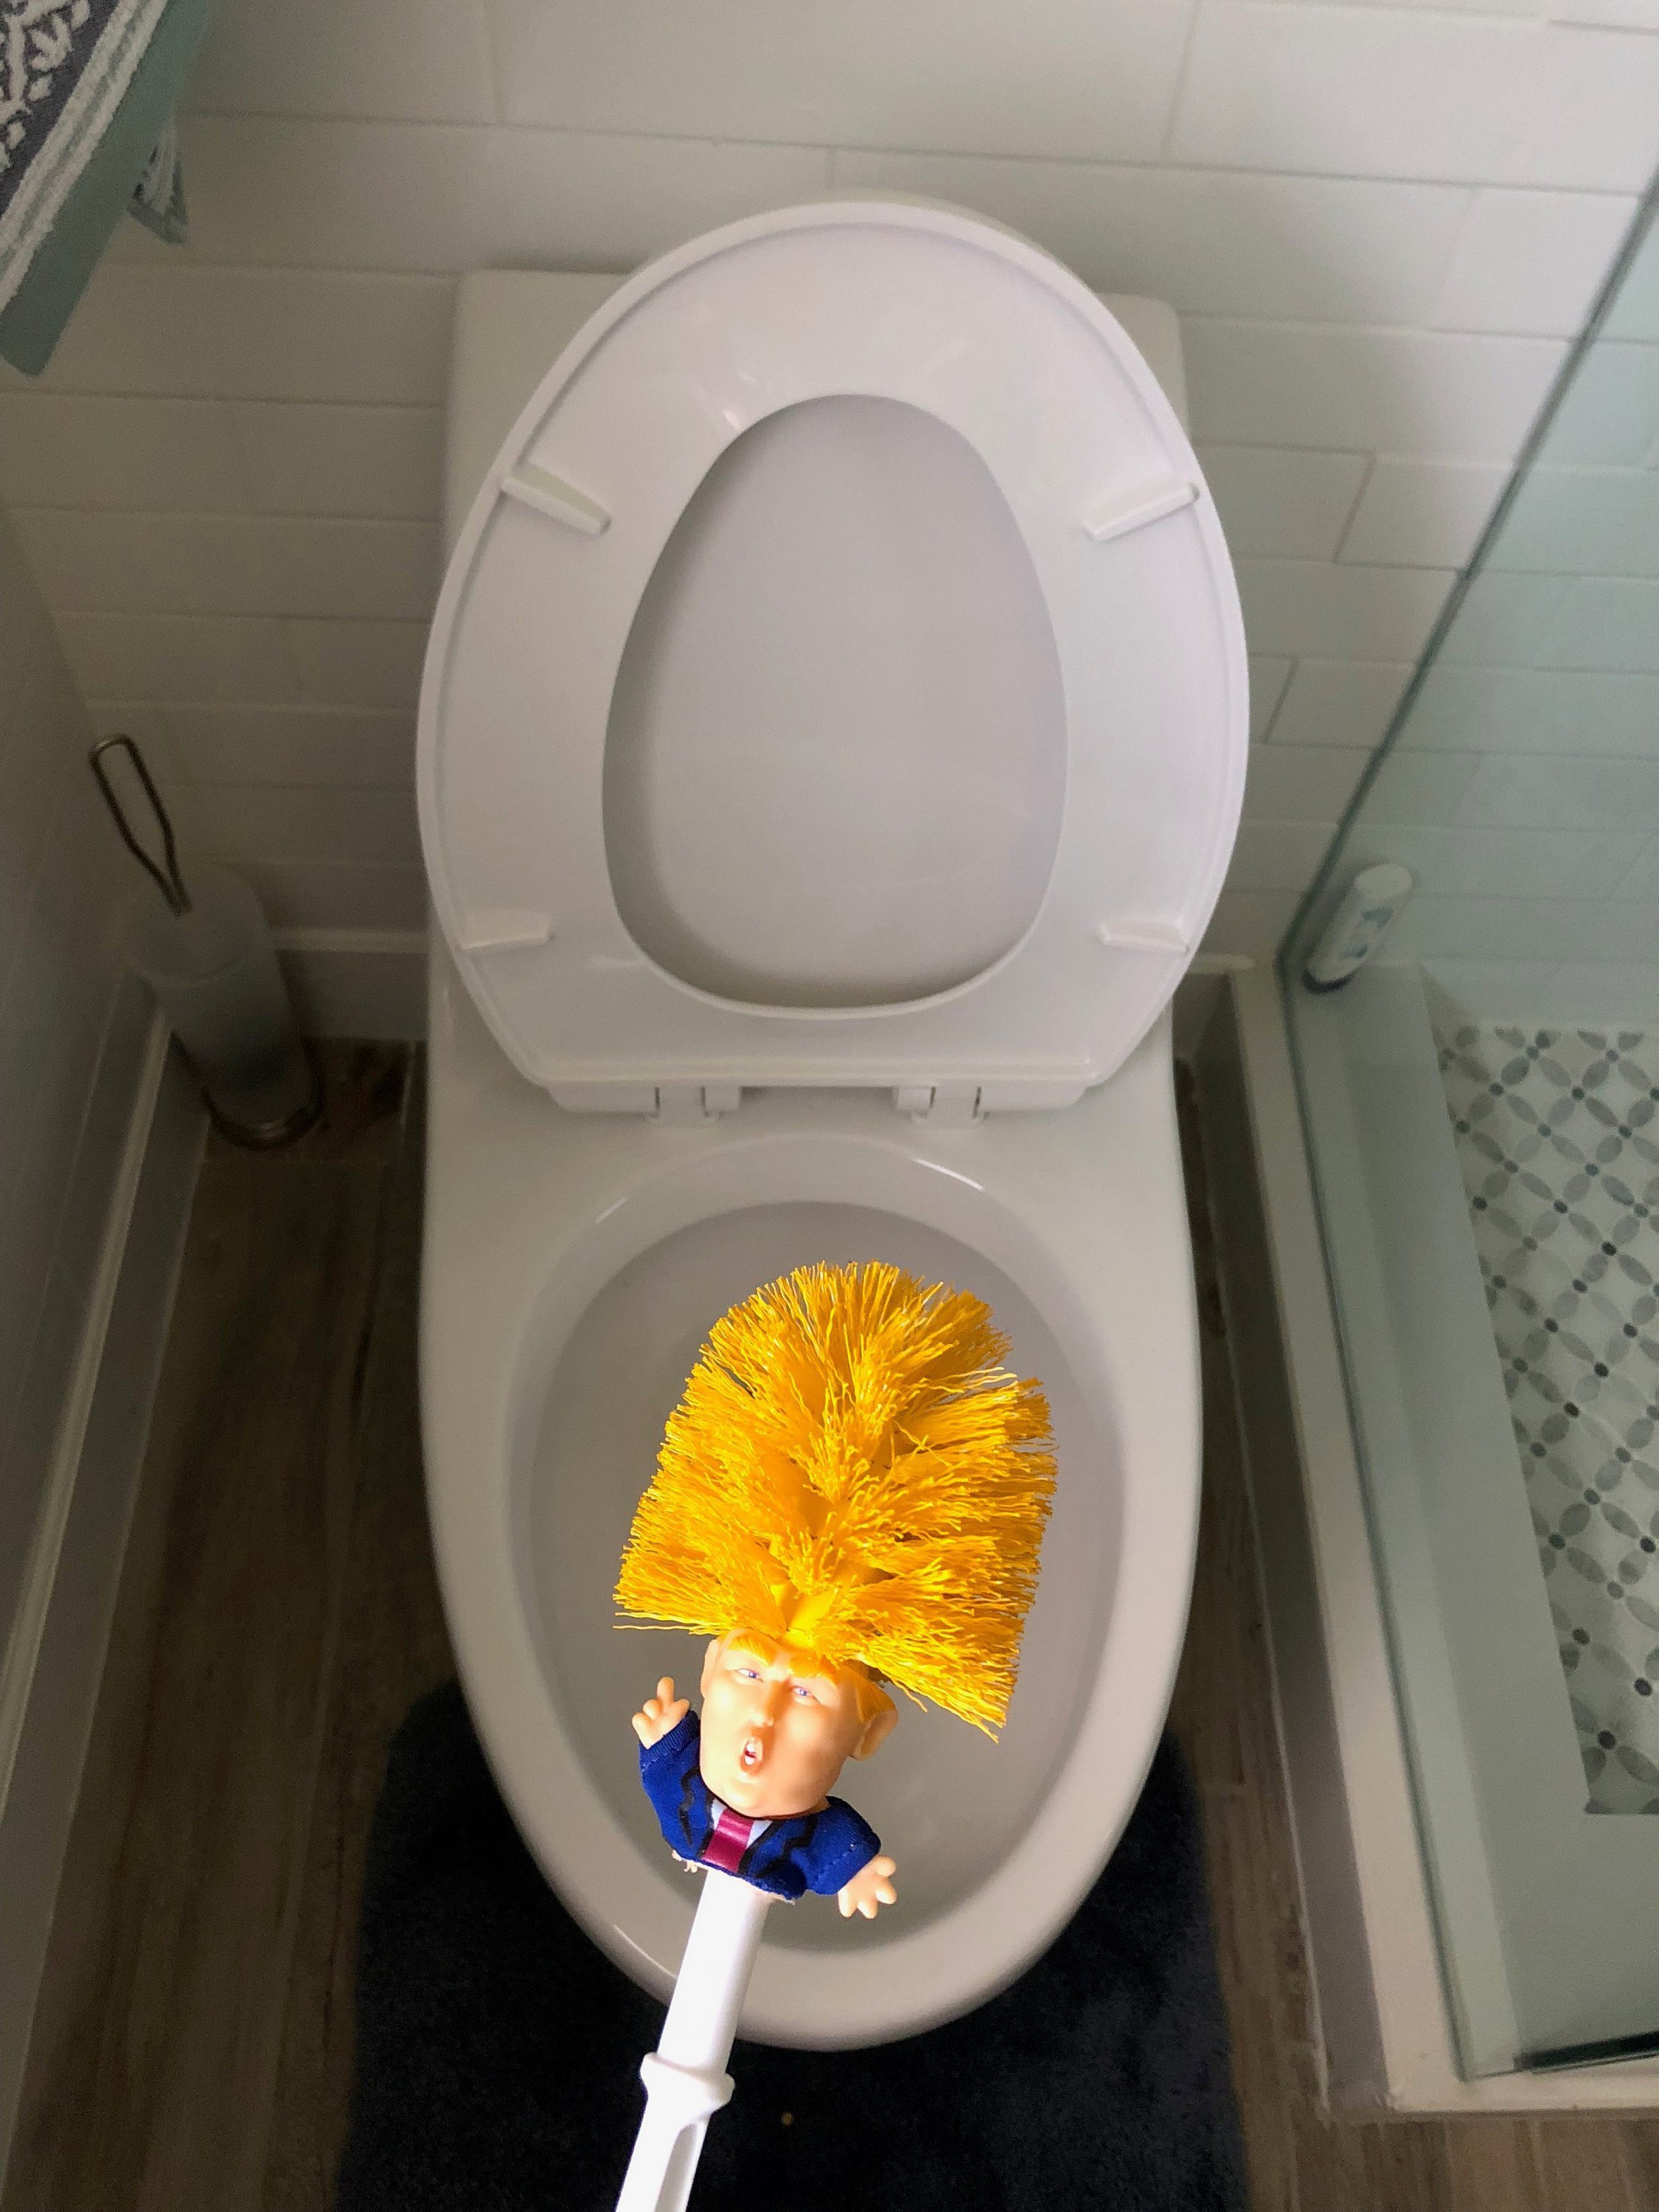 How To Buy A Toilet You Can Now Buy A Donaldtrump Toilet Brush Bluesyemre